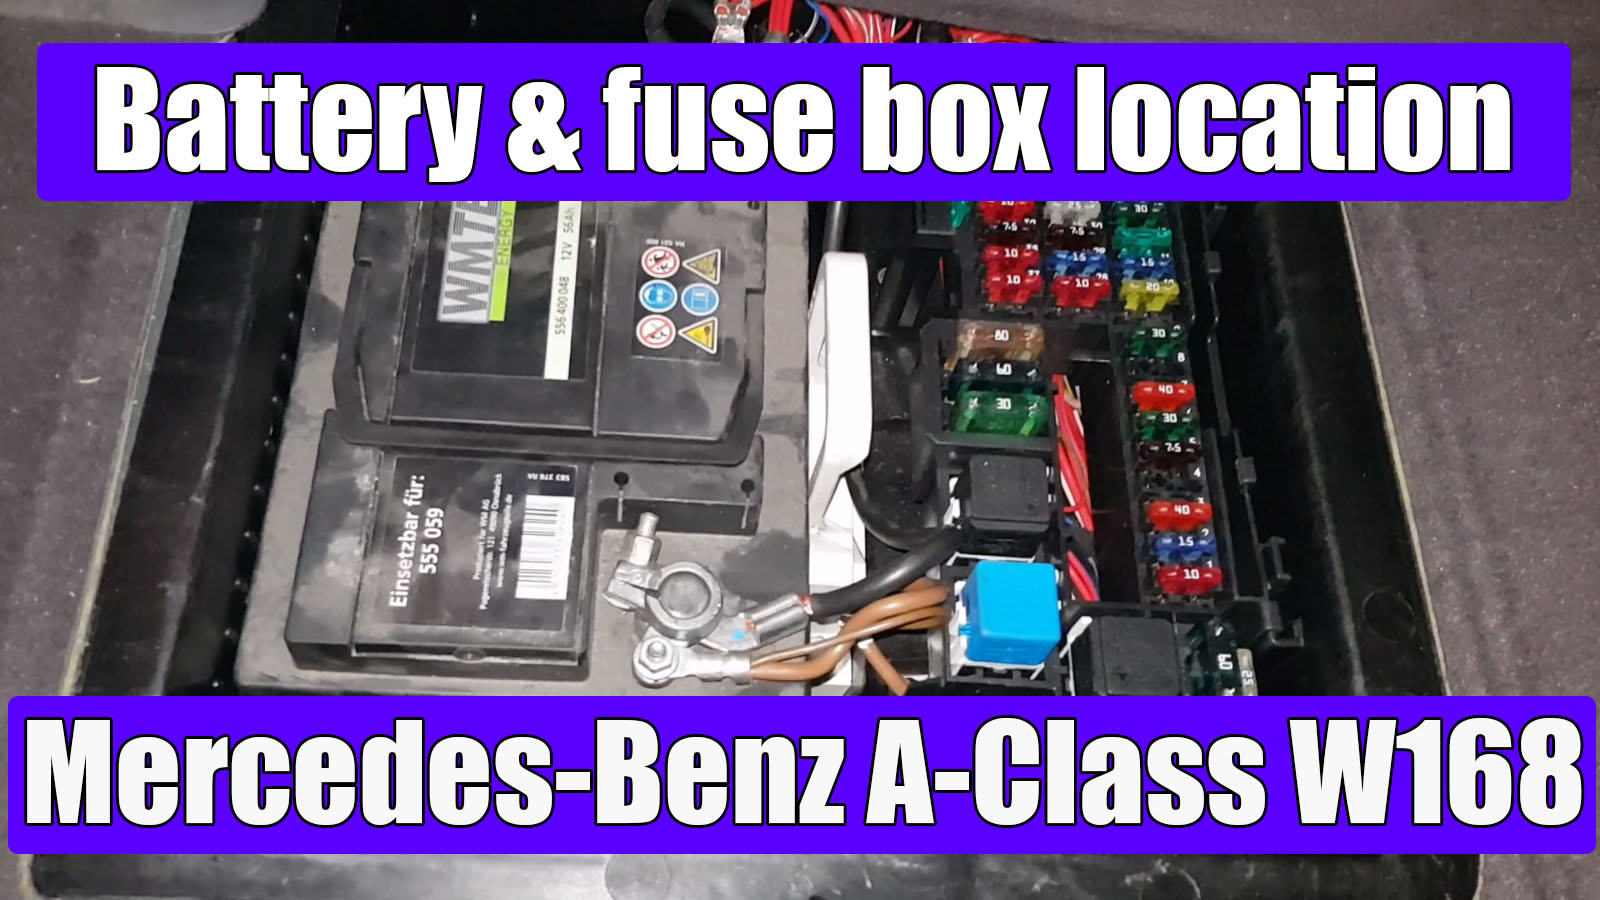 hight resolution of mercedes benz a class w168 battery and main fuse box location video mercedes